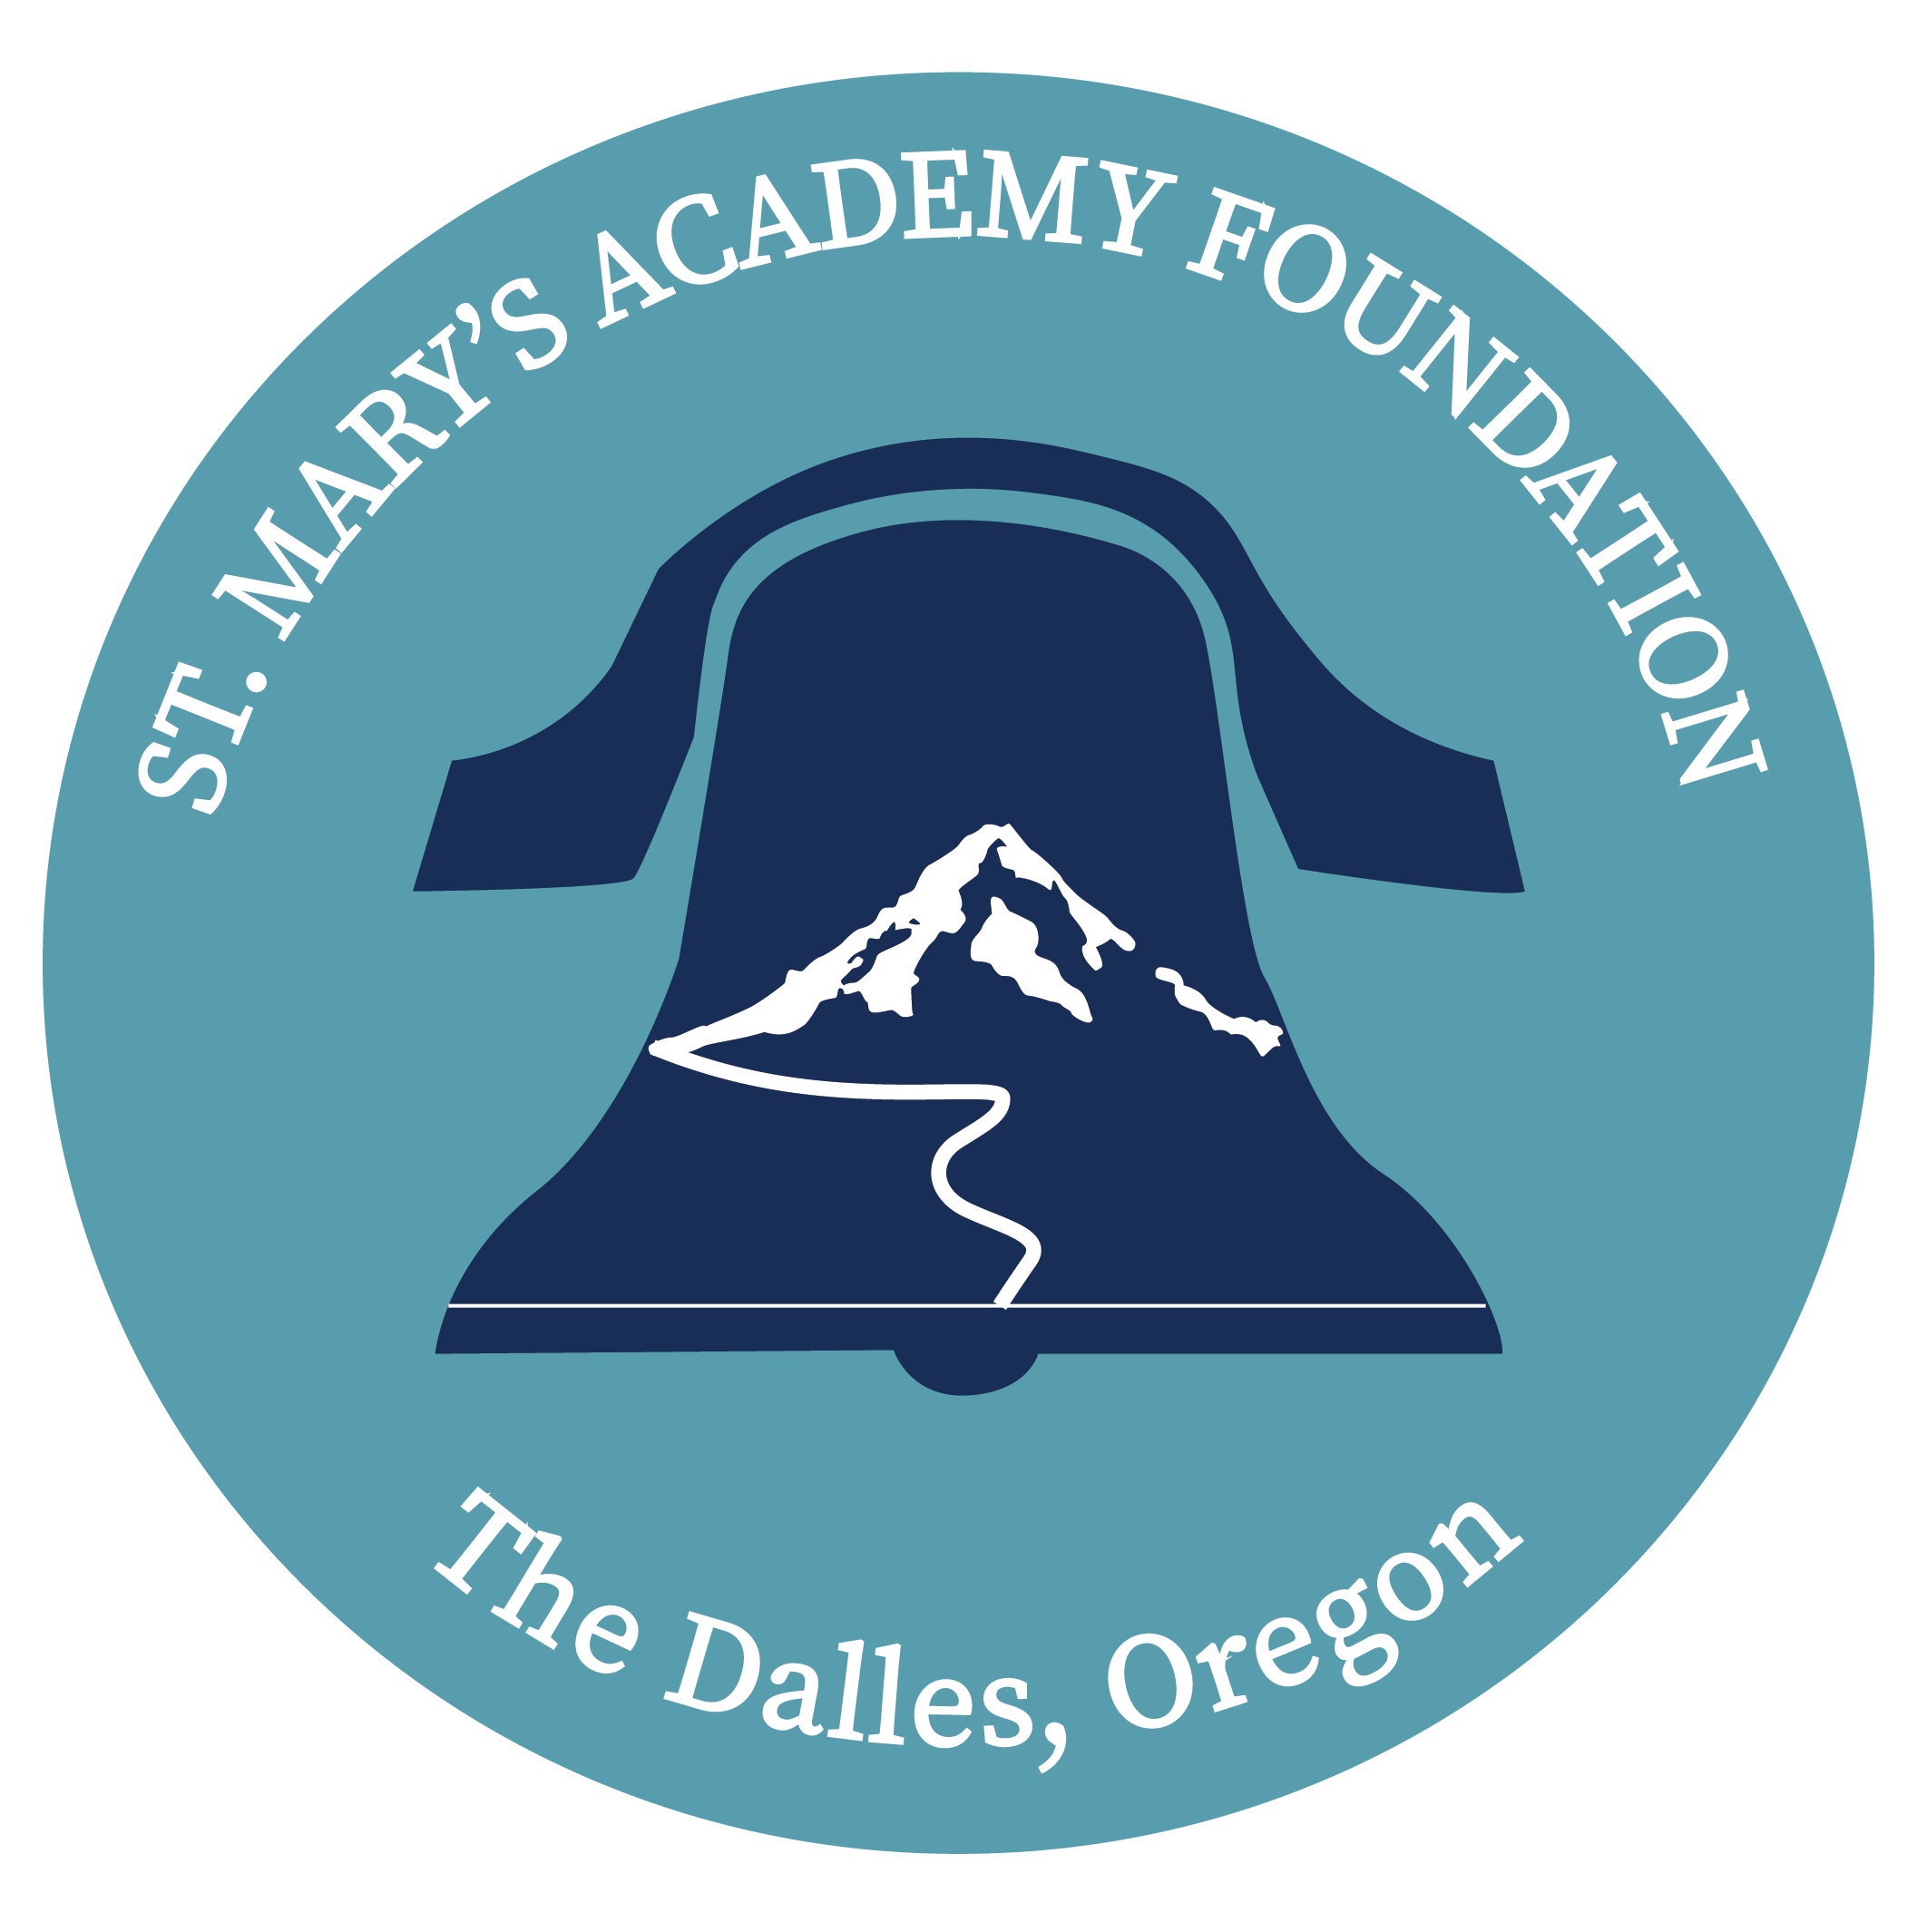 St. Mary's Academy Foundation of The Dalles